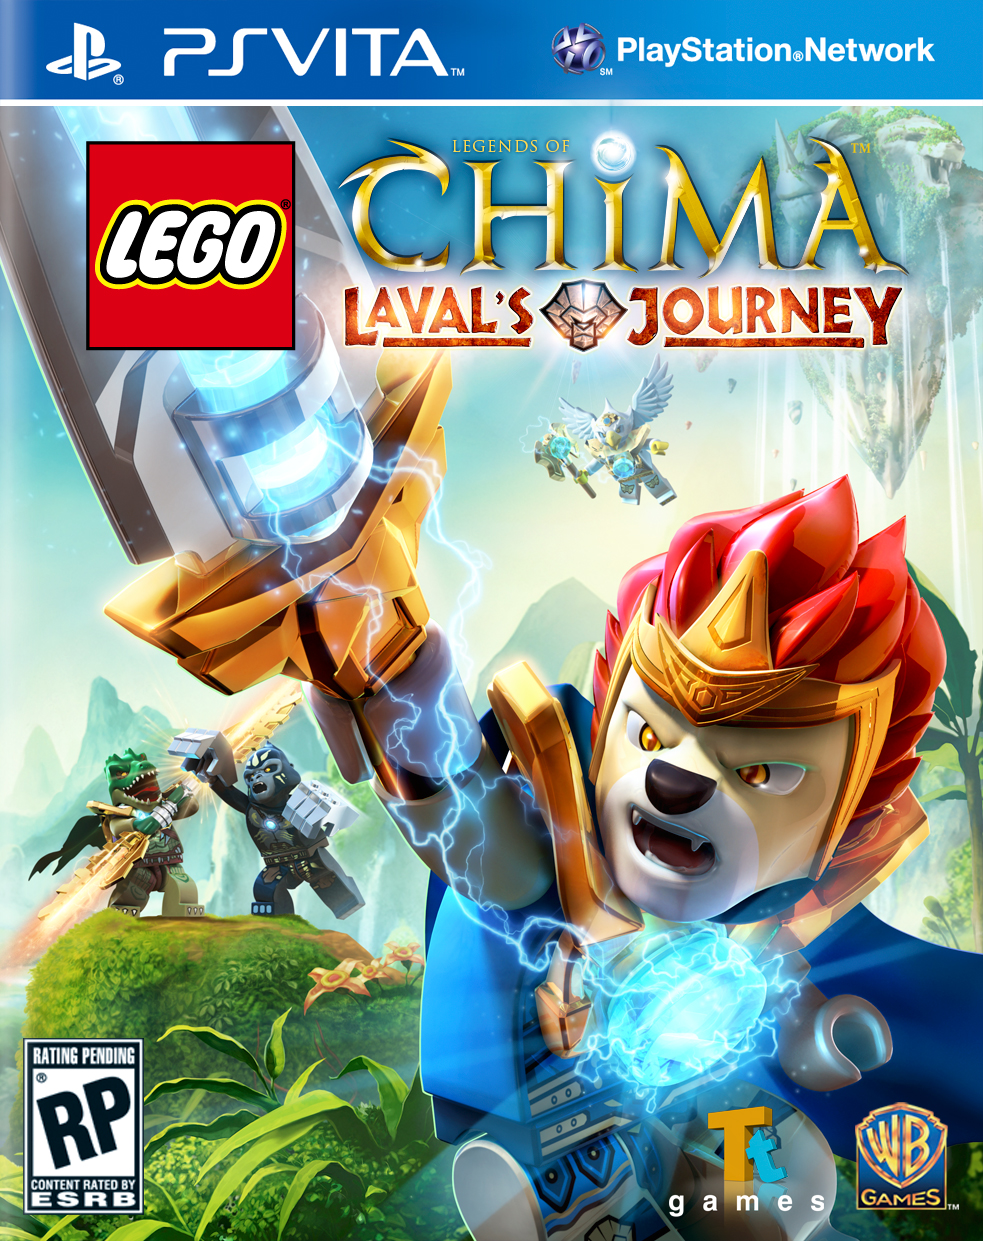 LEGO Legends of Chima: Laval's Journey - Brickipedia, the LEGO Wiki